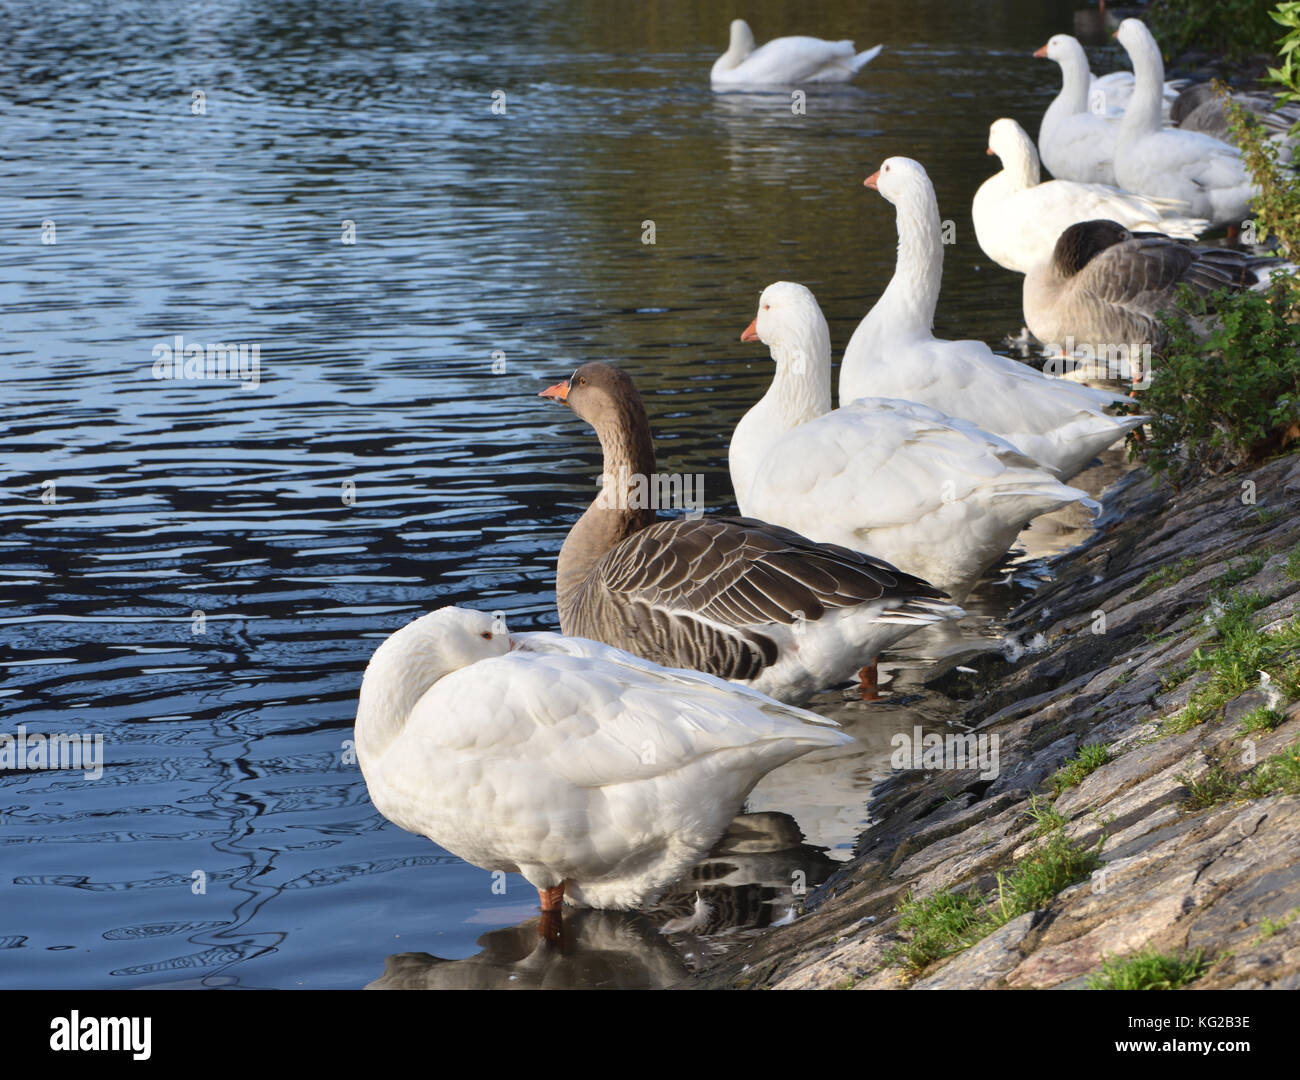 White and brown domestic geese on the bank of the River Exe at The Quay in Exeter. Exeter, Devon, UK. - Stock Image